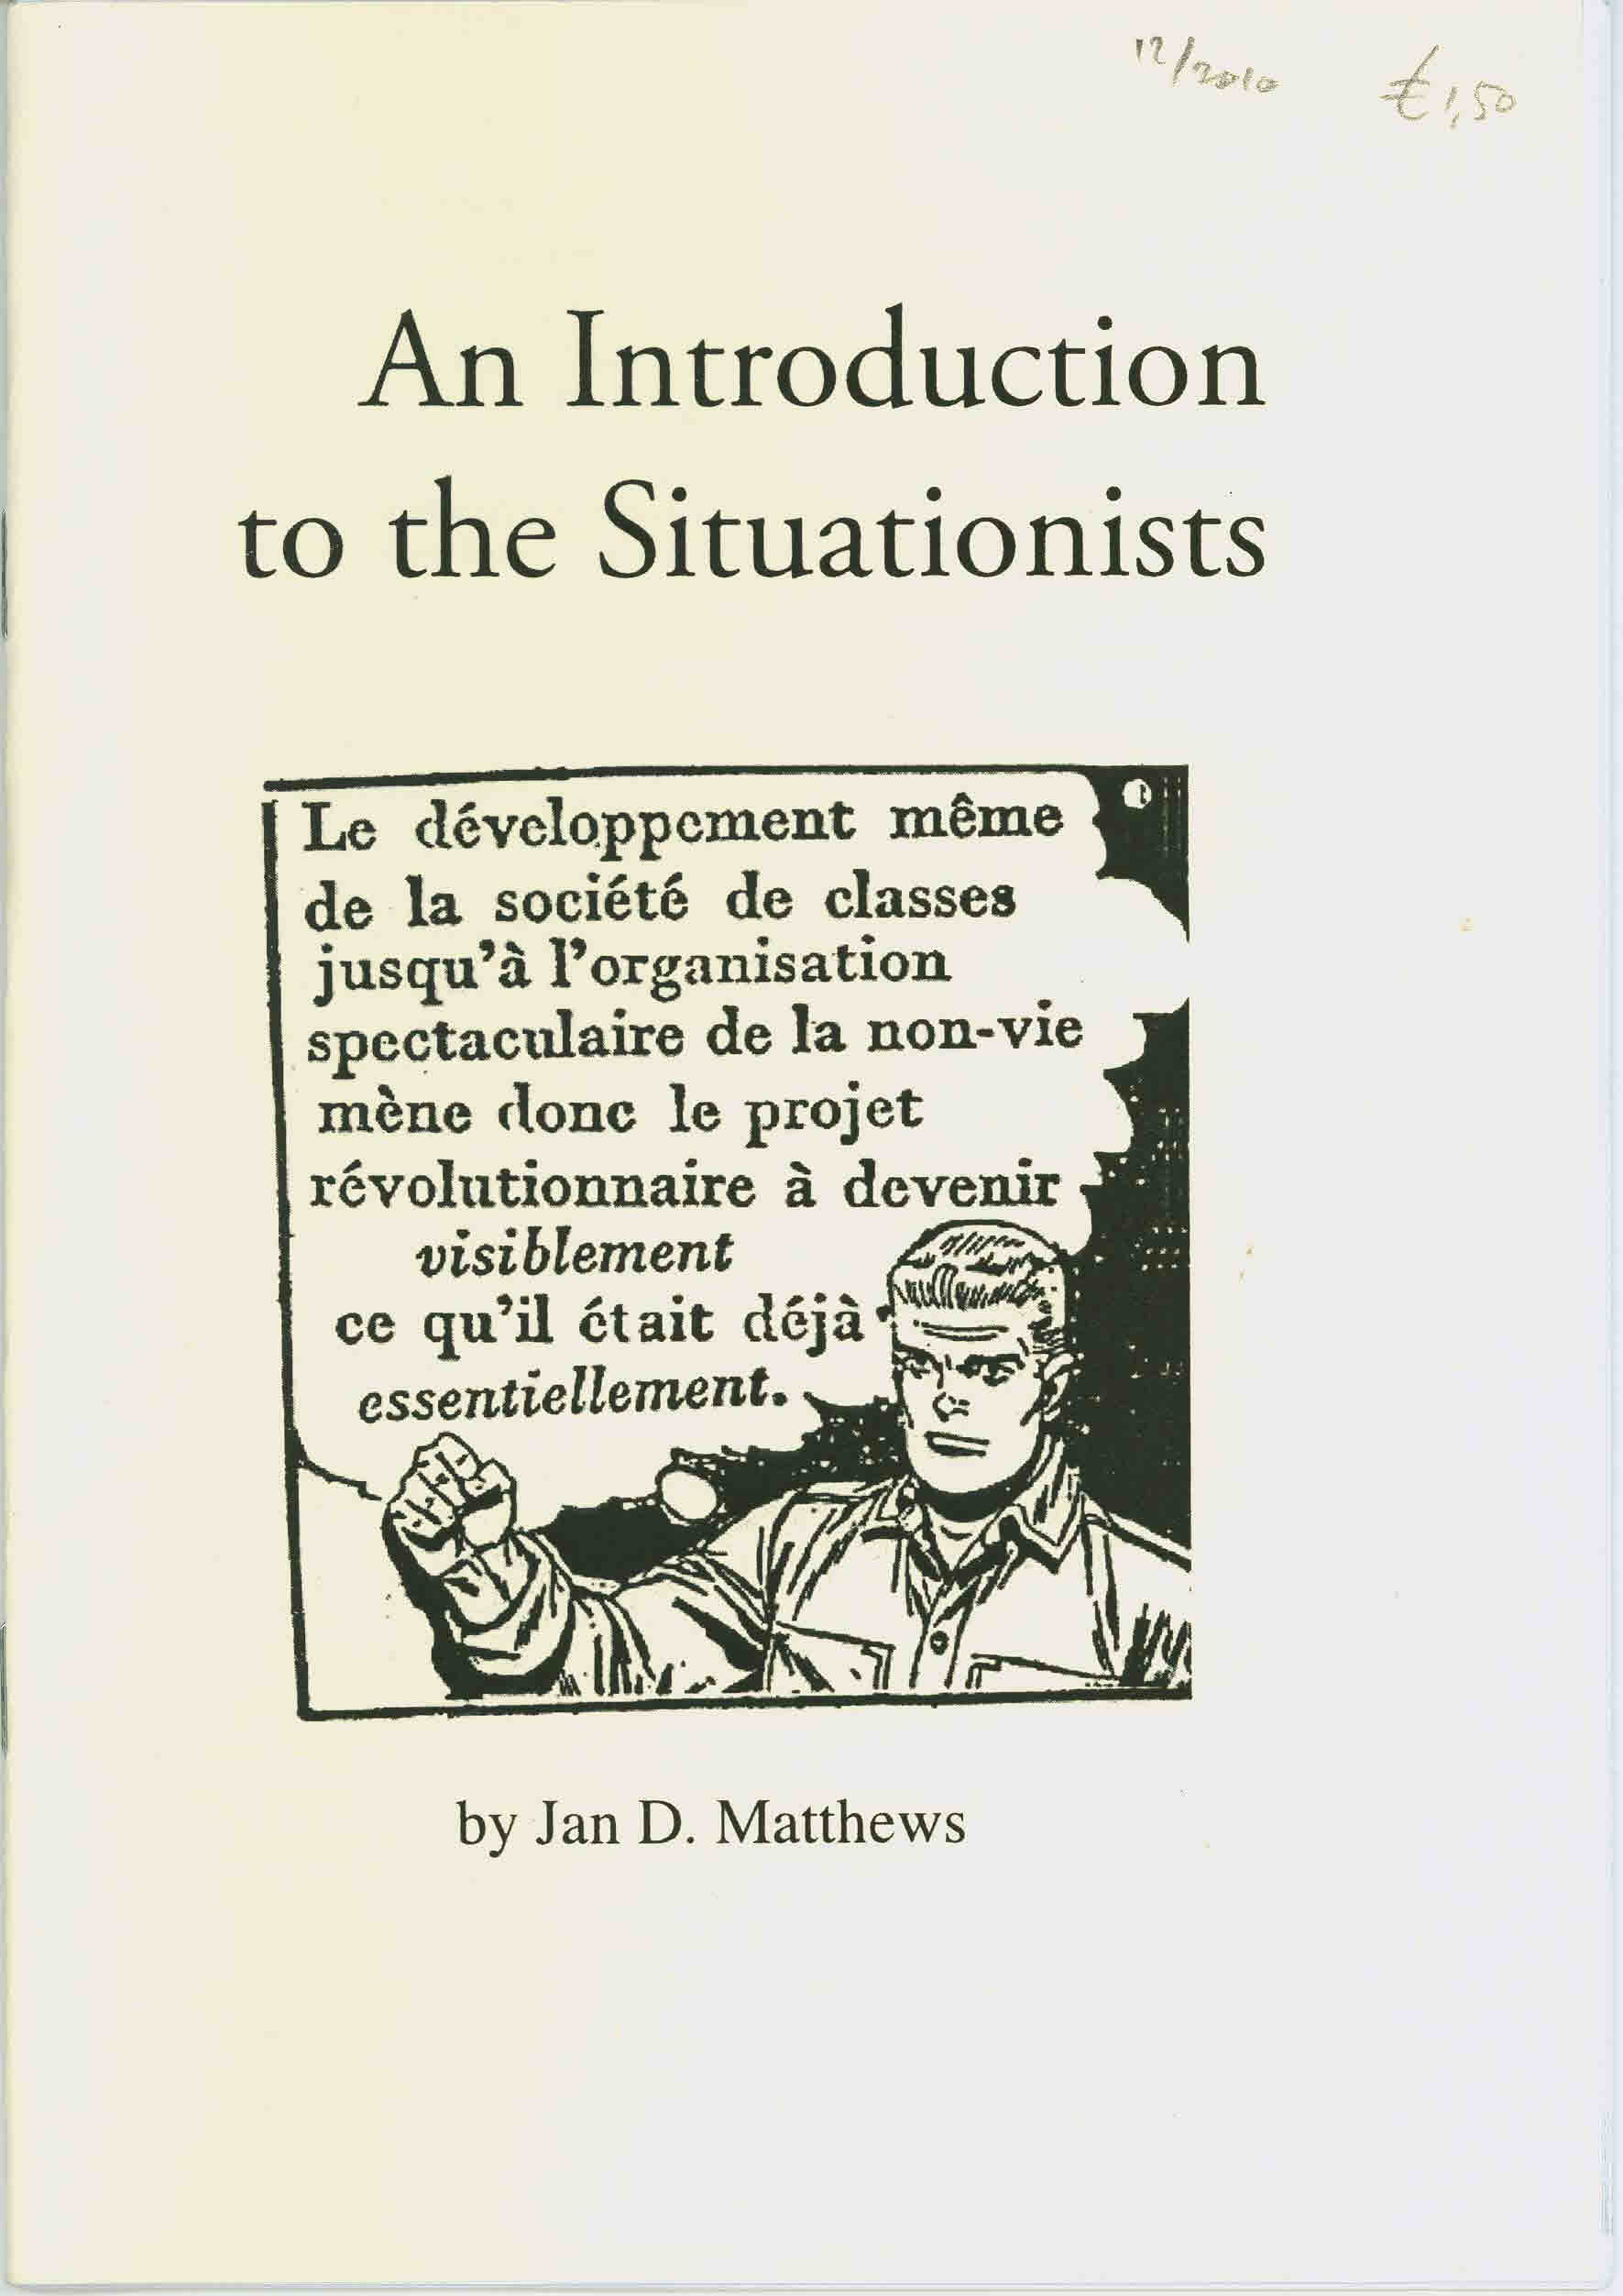 An Introduction to the Situationists